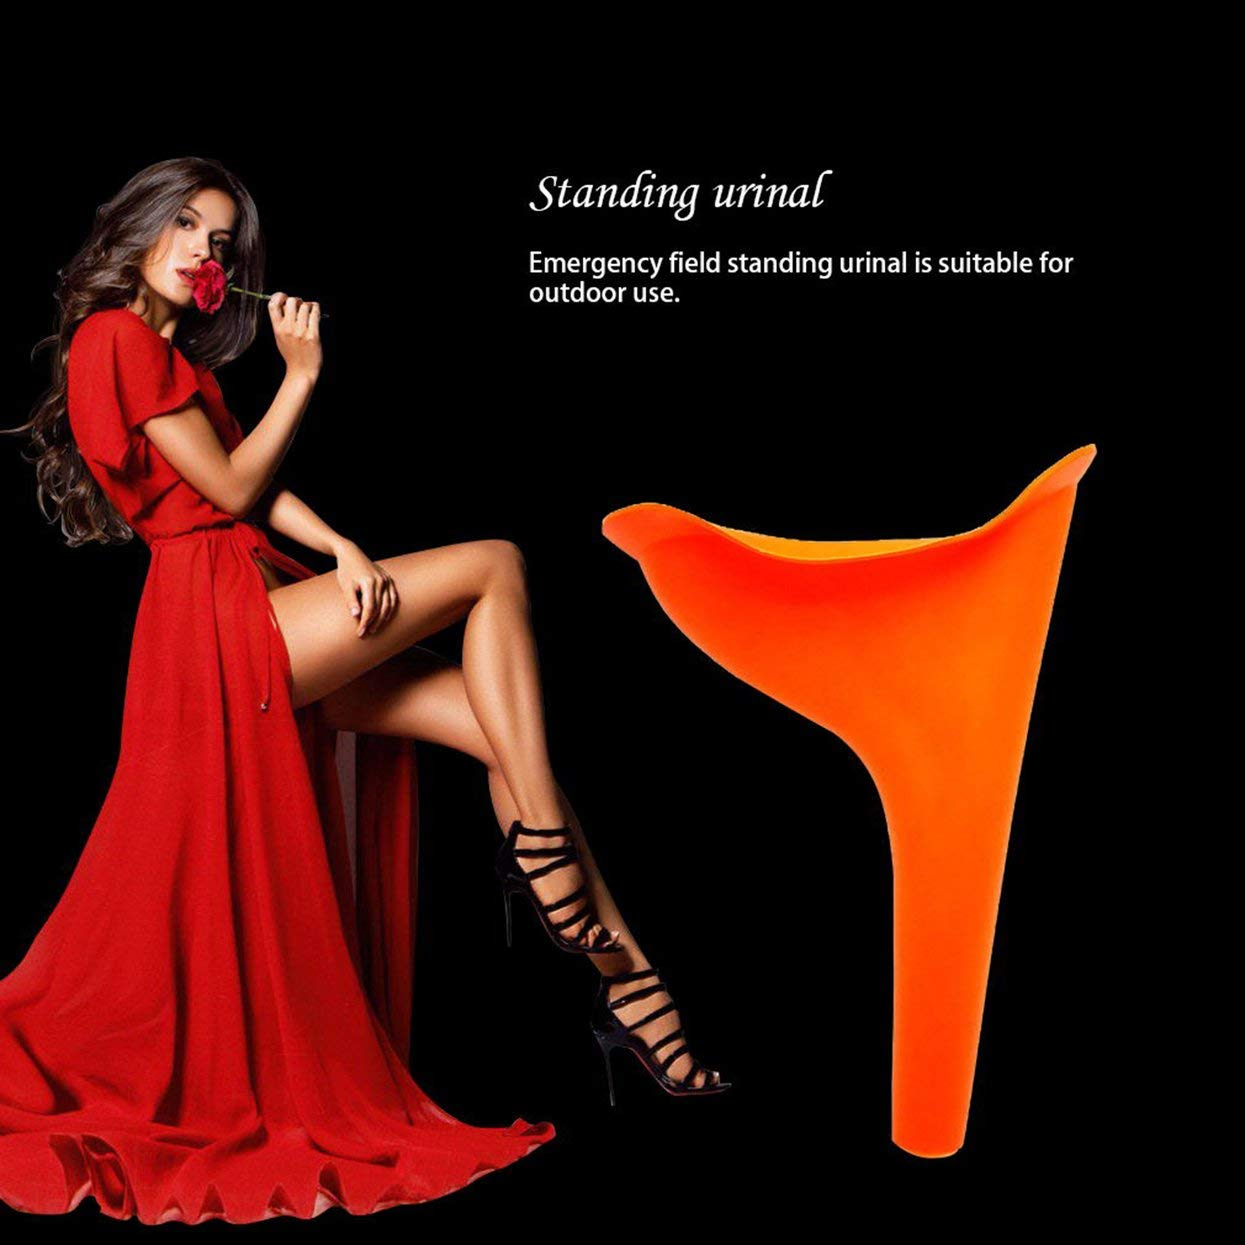 Detectorcatty Urinal Private Parts Nursing Outdoor Female Emergency Field Standing Urinal